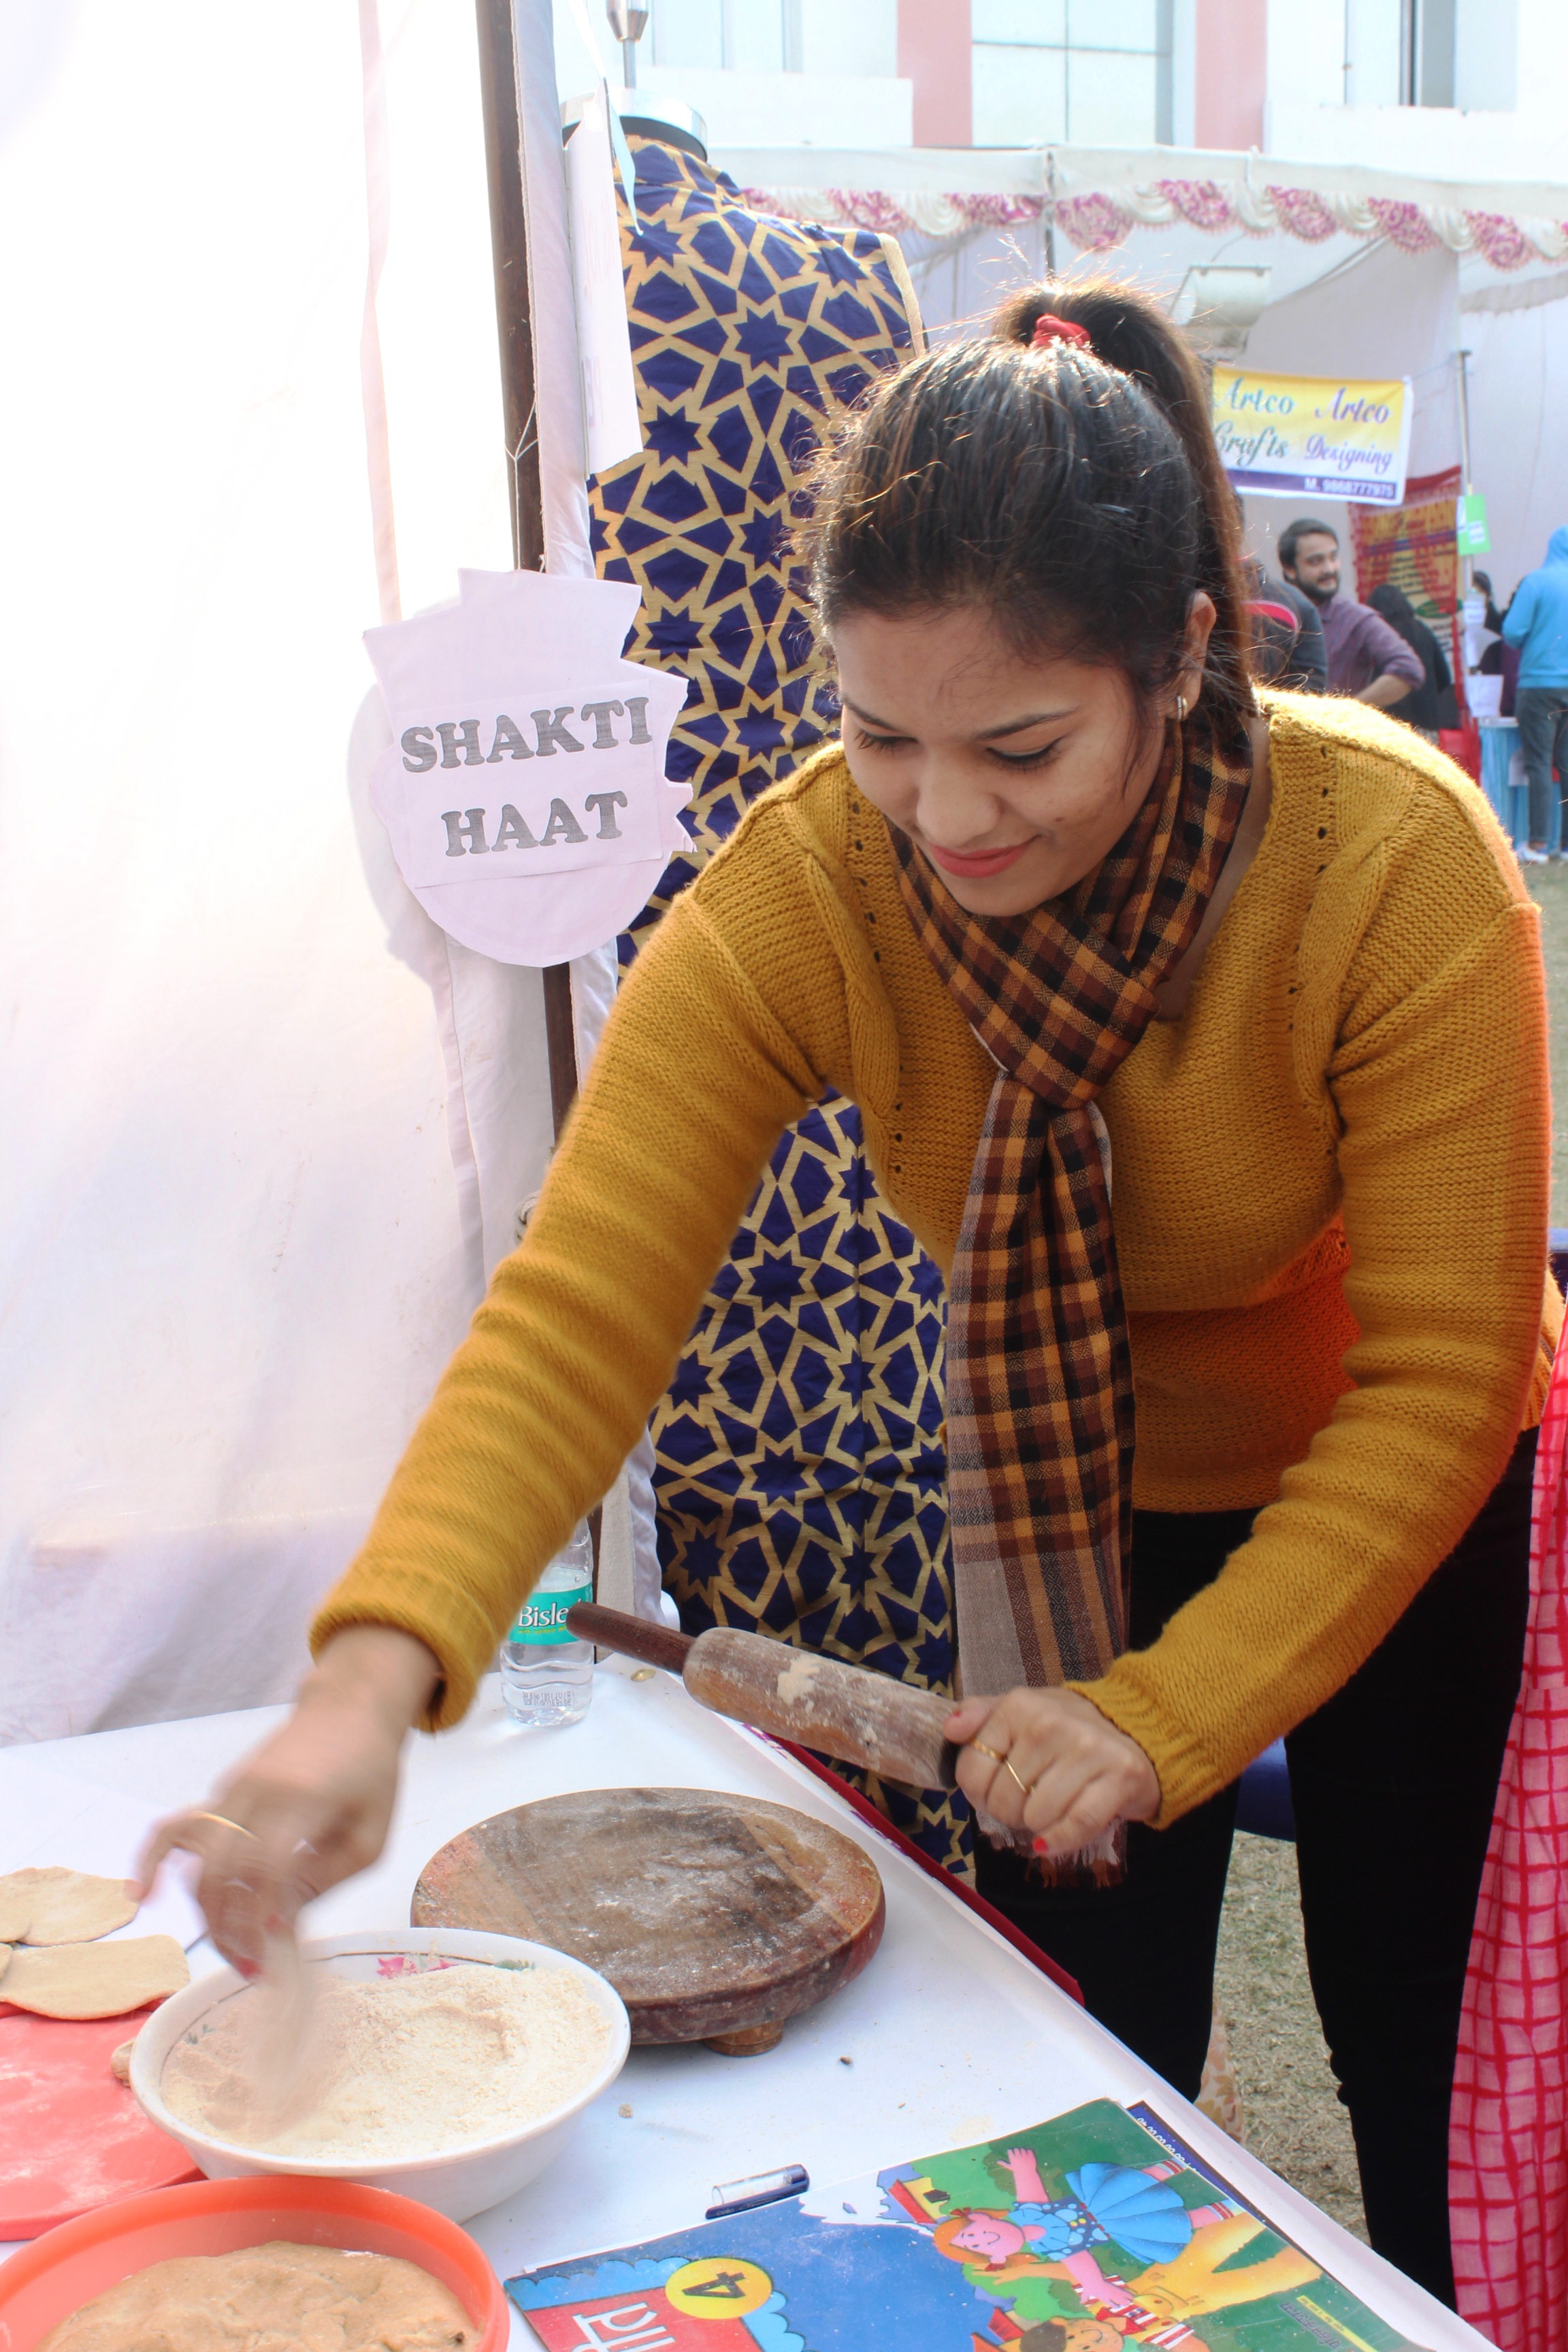 Students at Shakti Haat